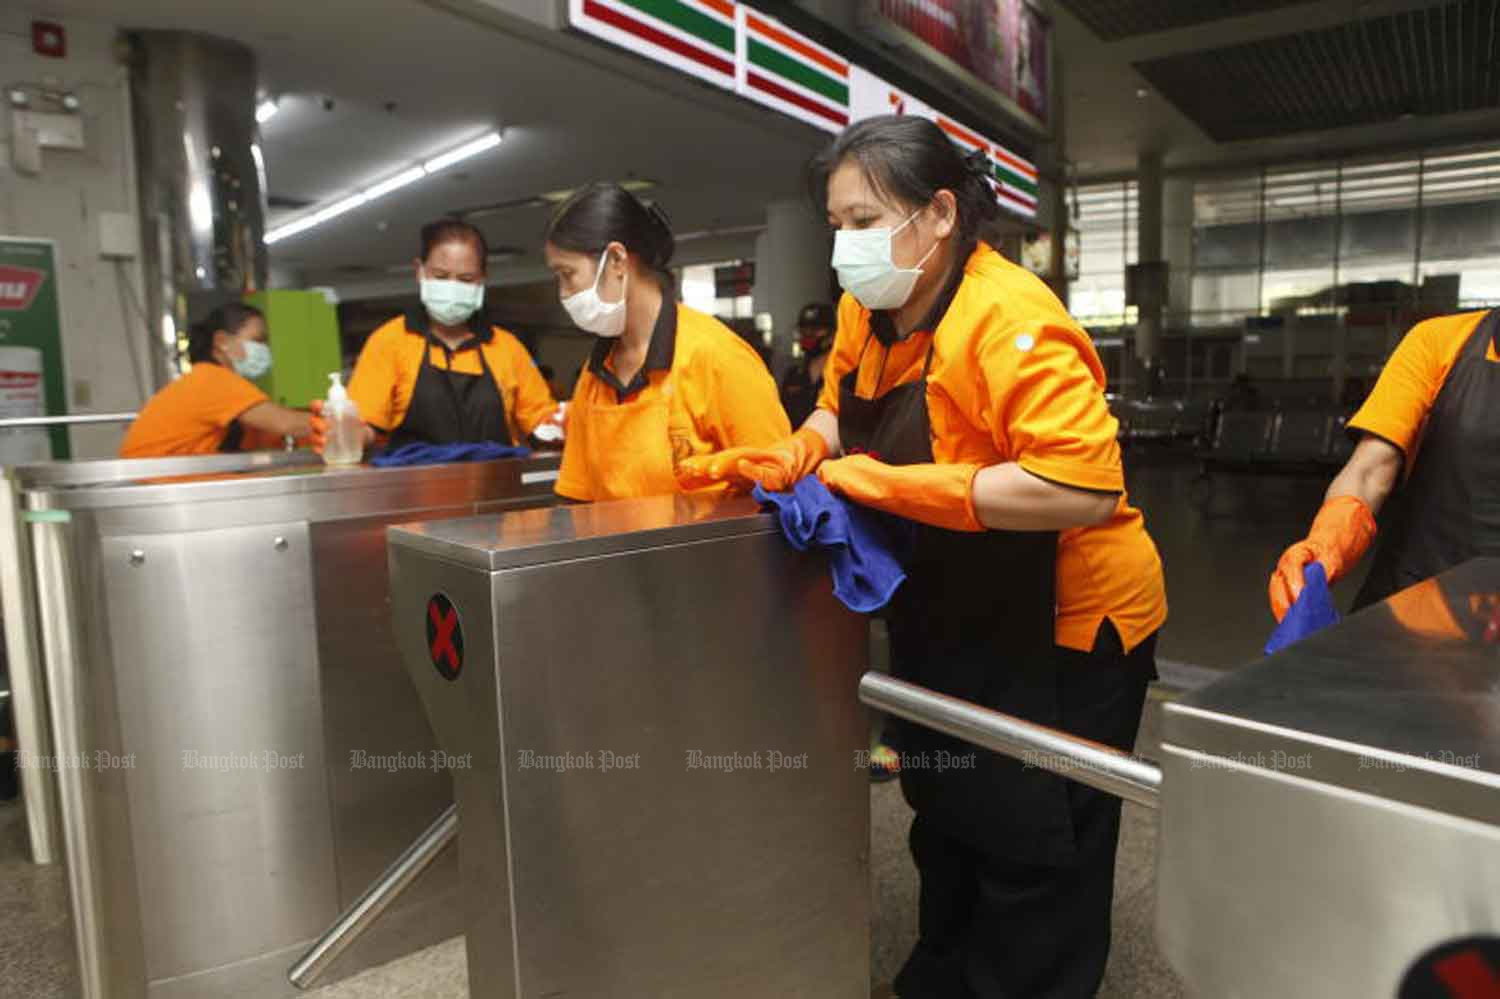 Staff busily clean Mor Chit bus terminal in Chatuchak district of Bangkok on Friday, when the Public Health Ministry announced five new local Covid-19 cases. (Photo: Nutthawat Wicheanbut)